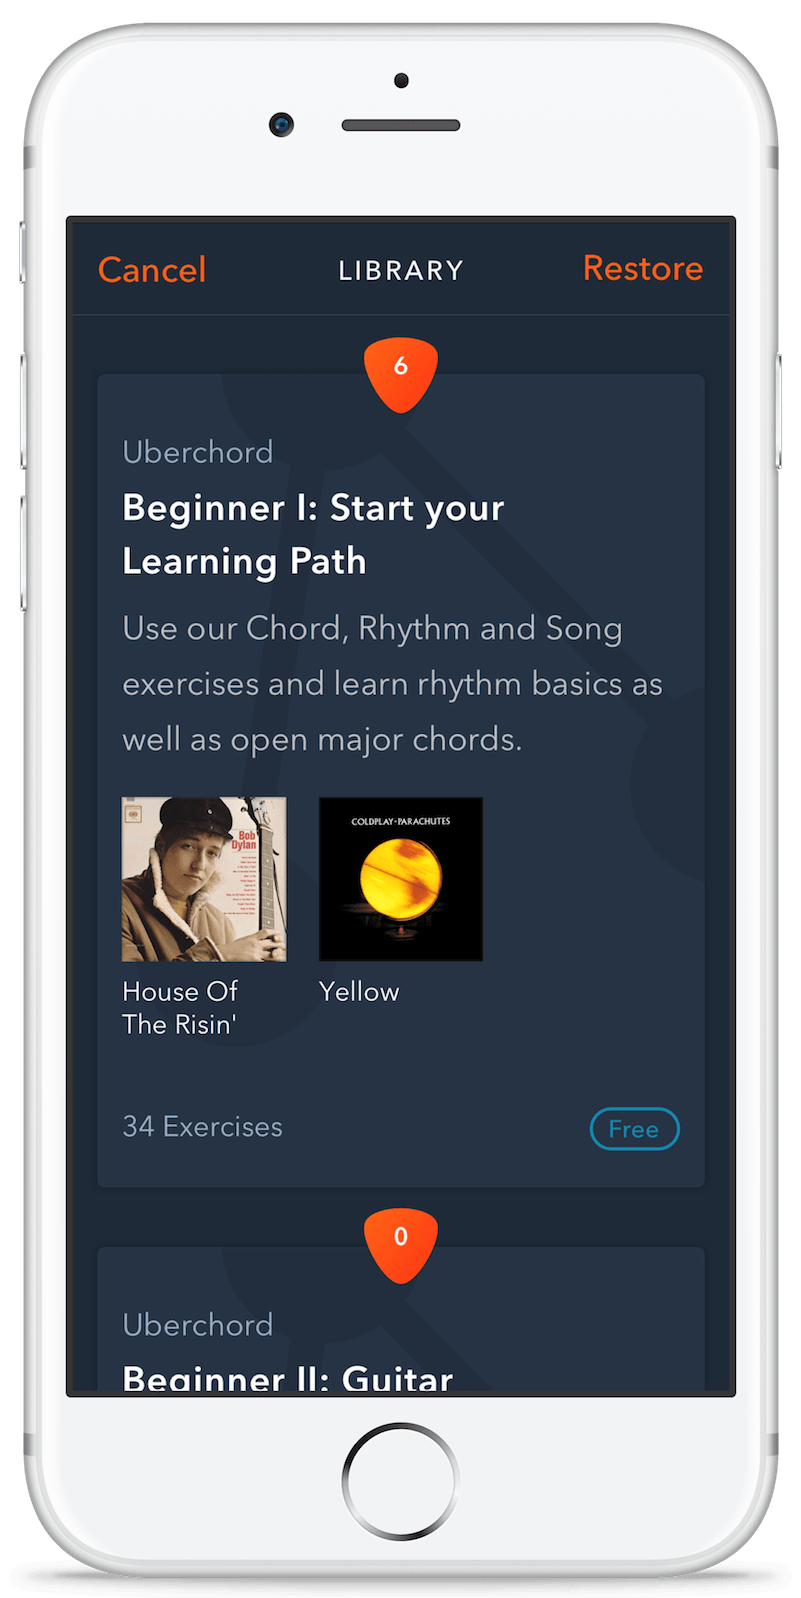 uberchord learning path